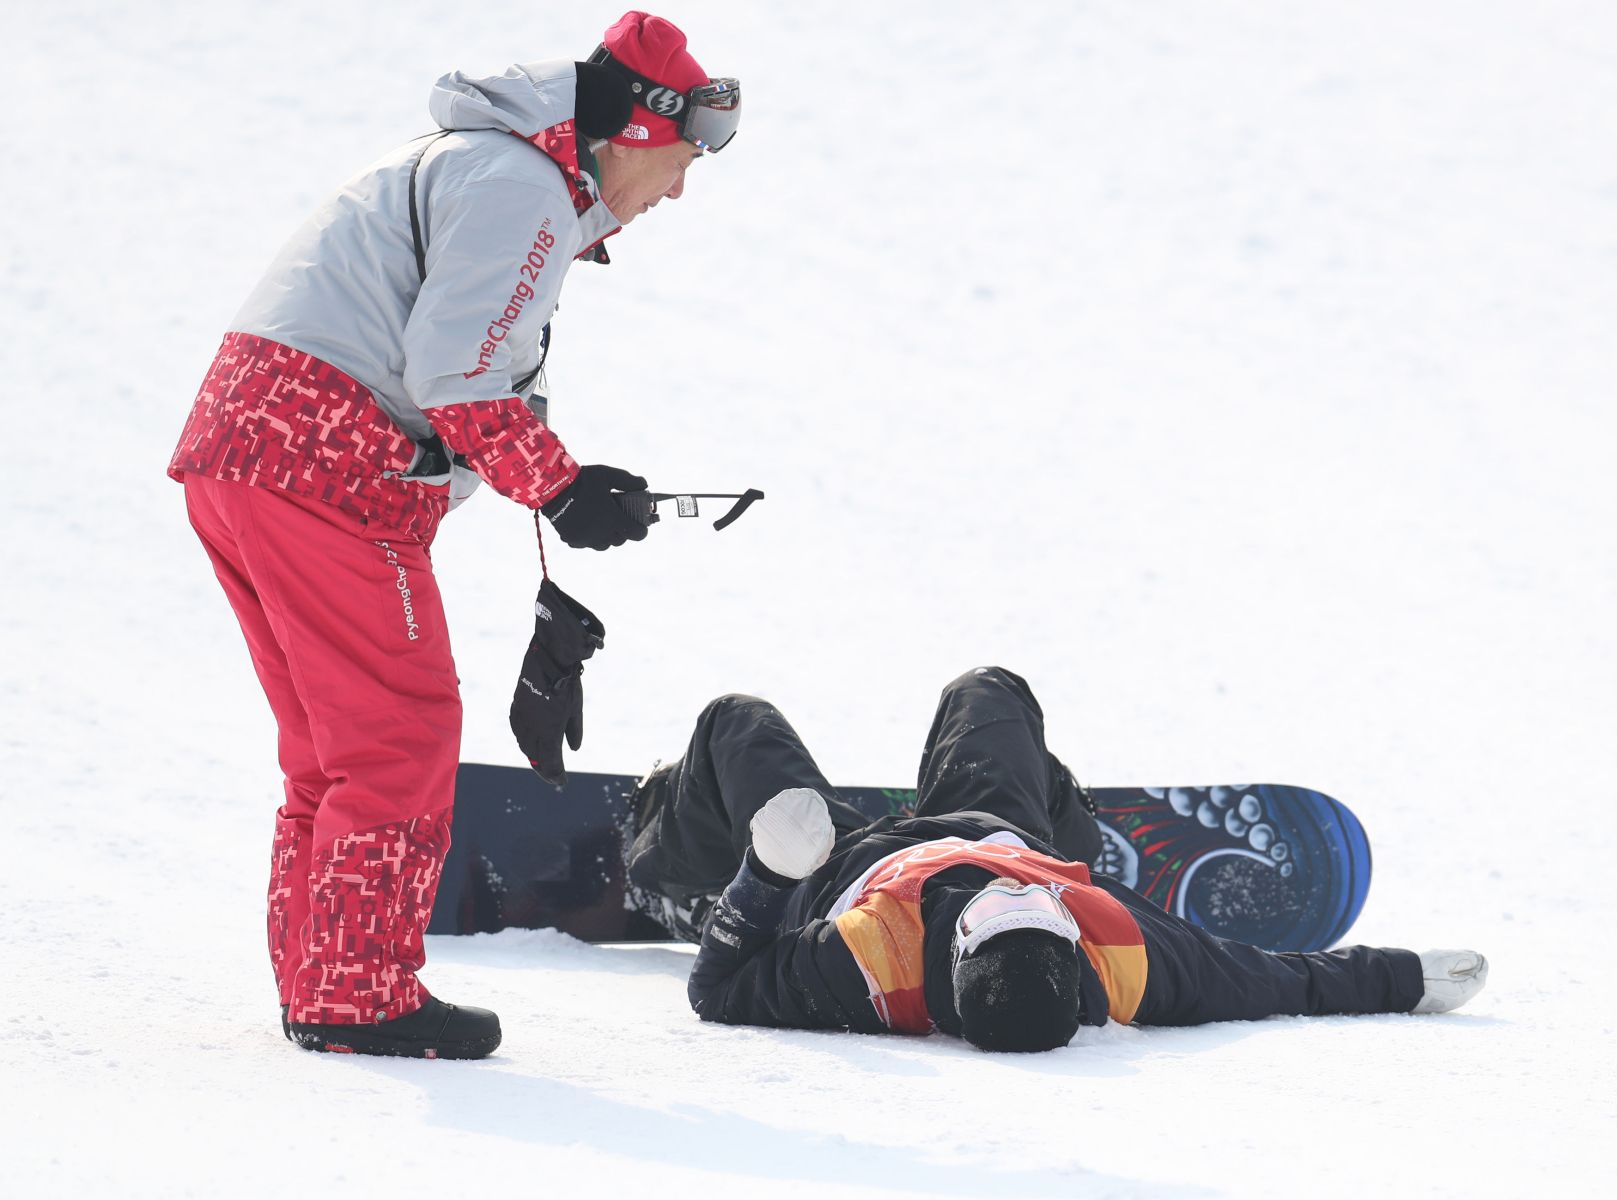 Sweden's Mans Hedberg lies injured after a heavy fall in run 2 of qualification for Men's Snowboard Slopestyle the PyeongChang 2018 Winter Olympic Games in South Korea. (Photo by Mike Egerton/PA Images via Getty Images)